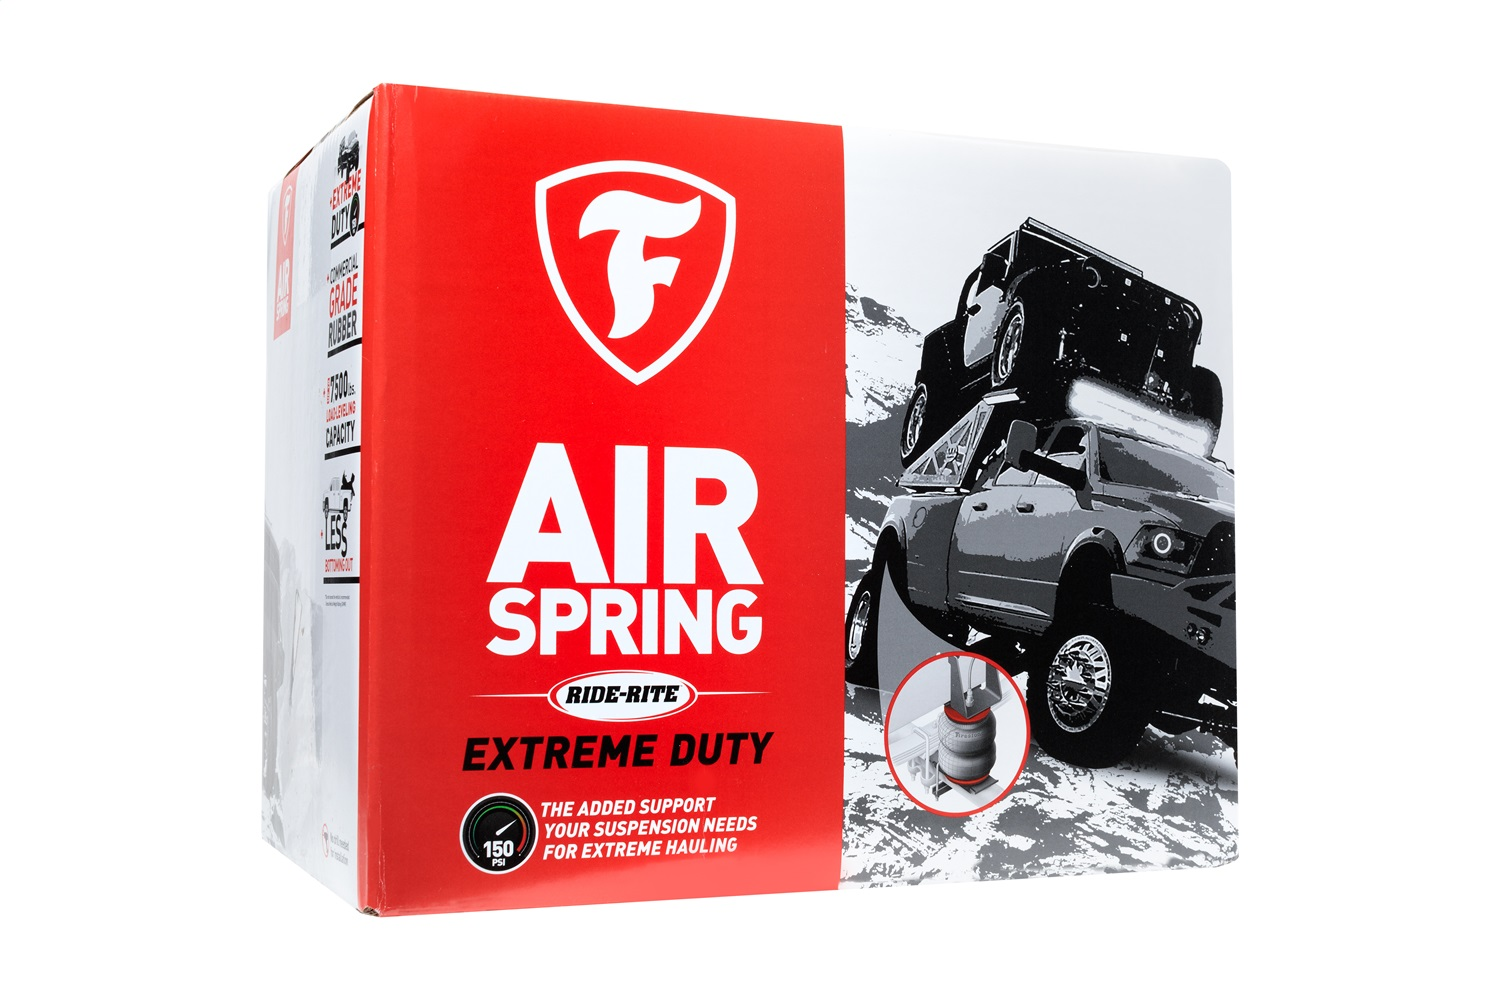 Firestone Ride-Rite 2711 RED Label Ride Rite Extreme Duty Air Spring Kit